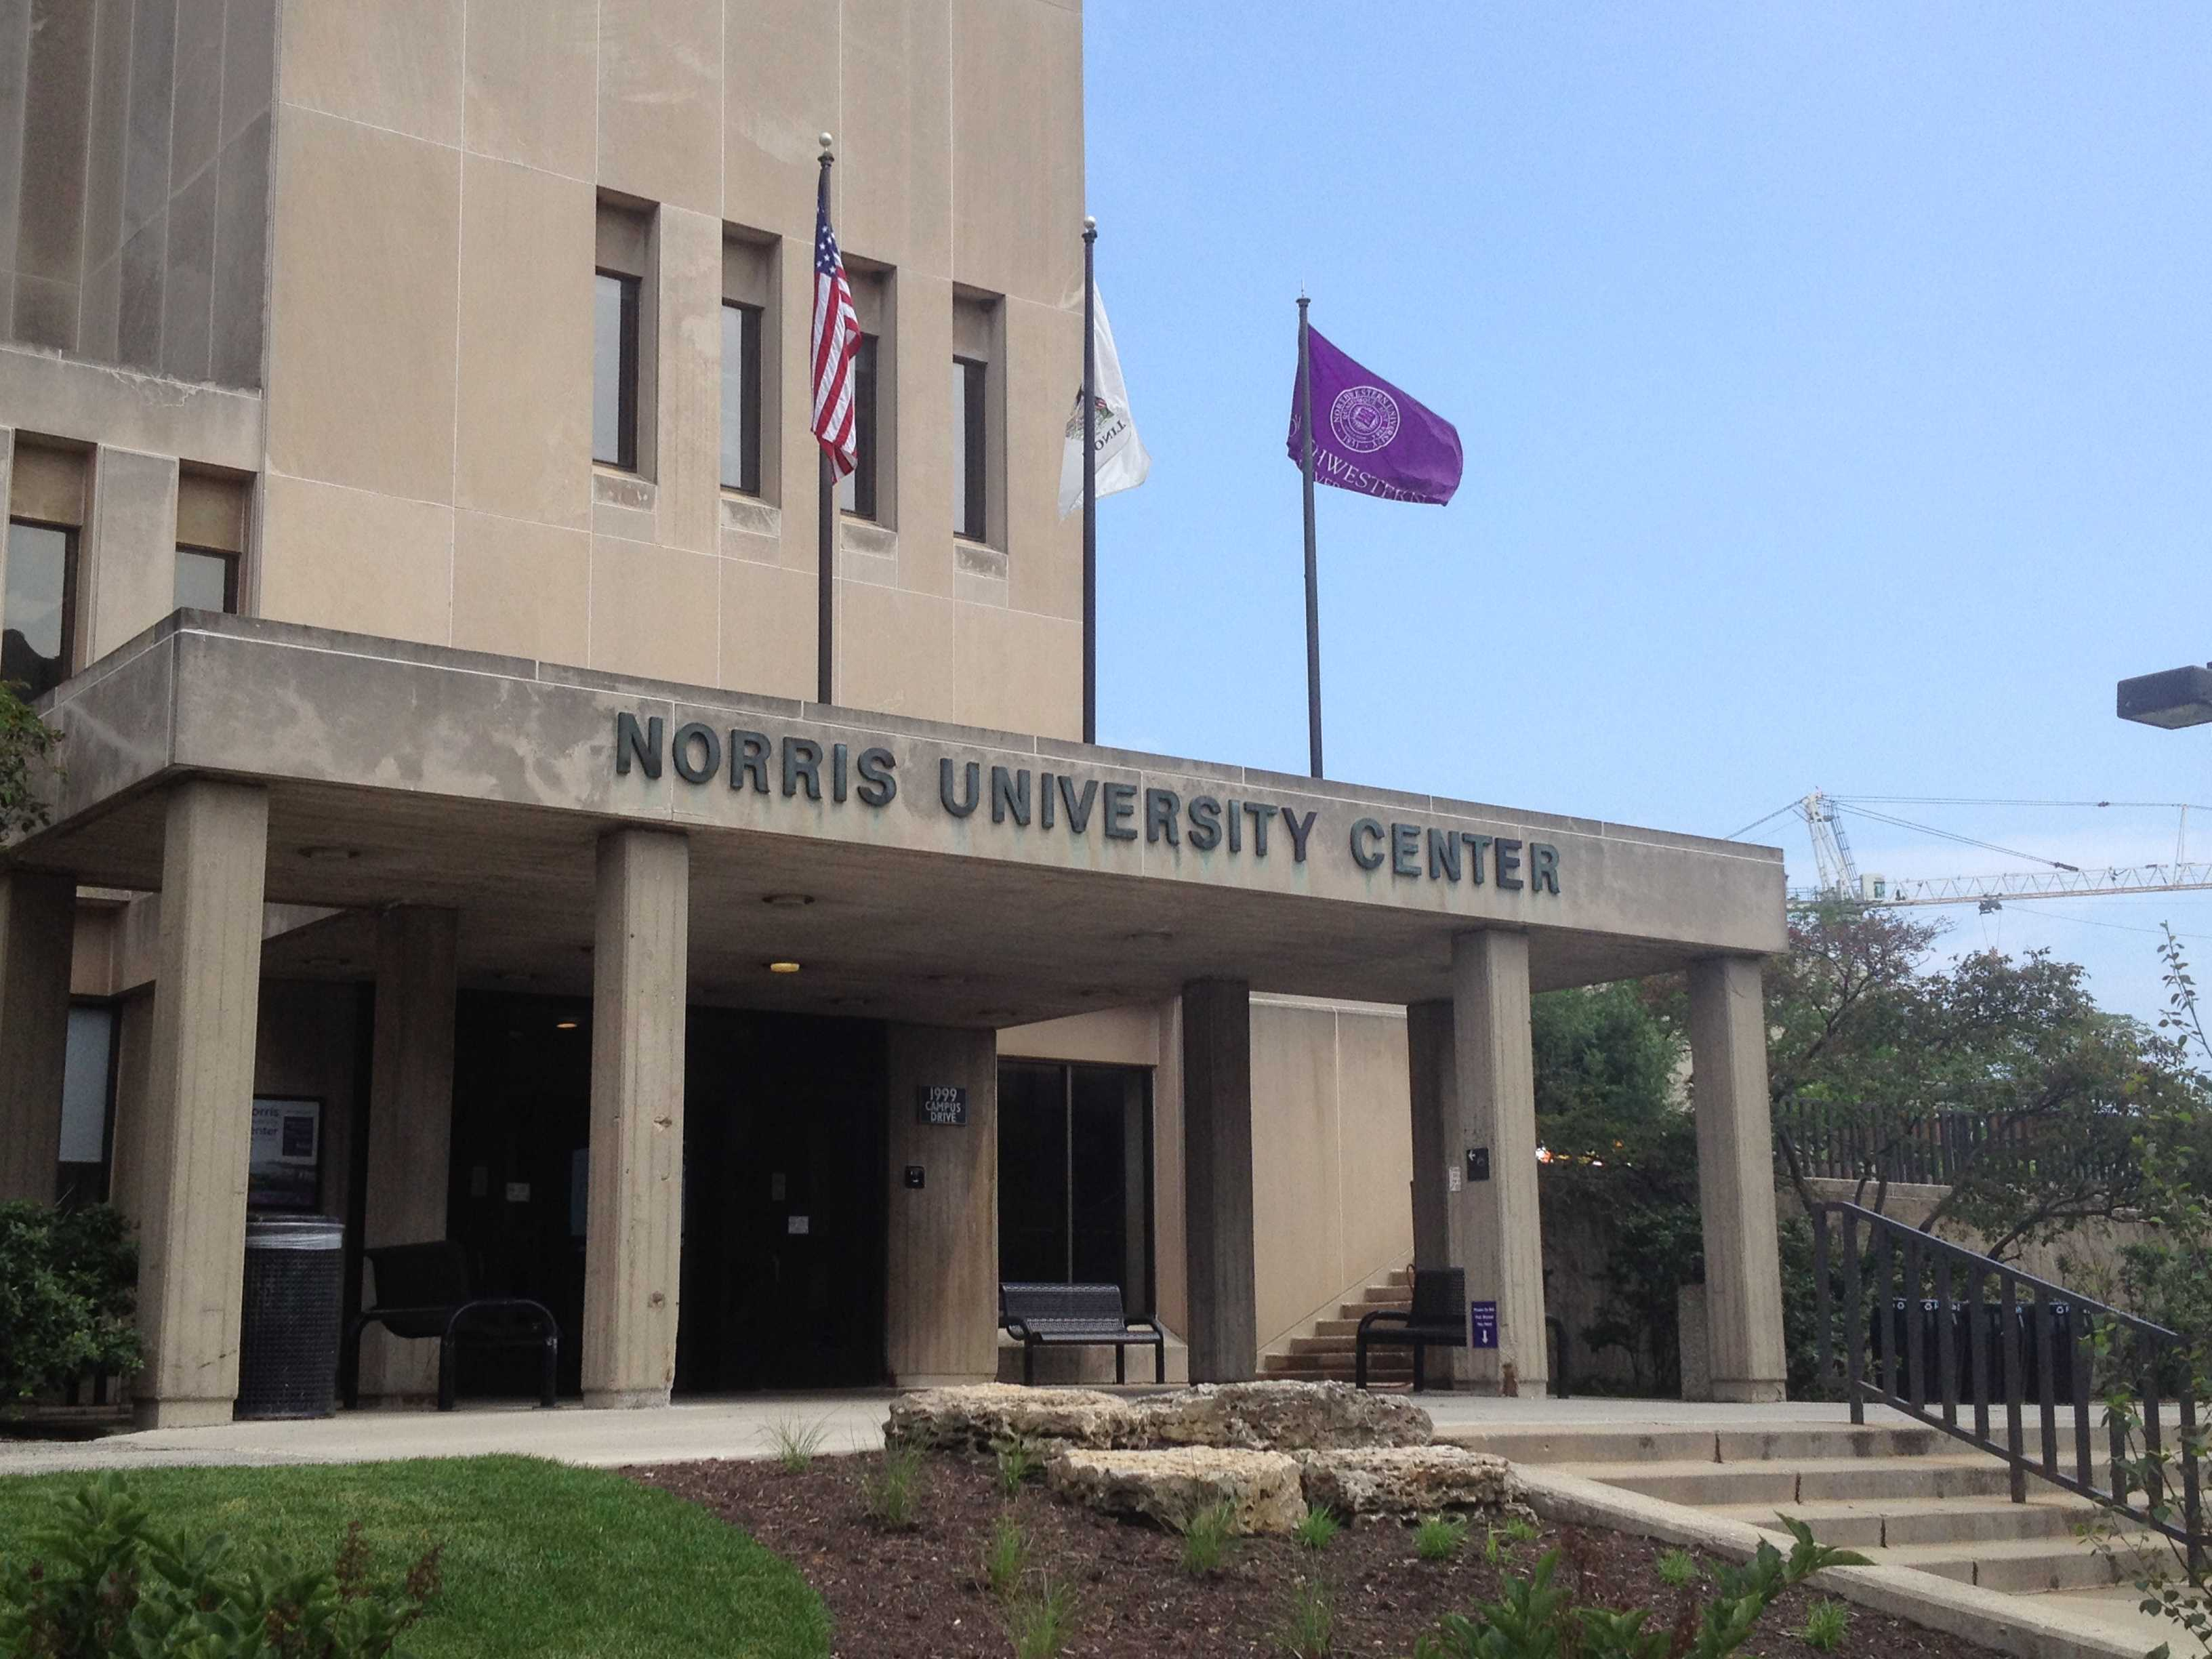 As the University weighs a new student center, Norris University Center is undergoing several changes this summer. One of the biggest changes is a rearrangement of space for student groups on the third floor.